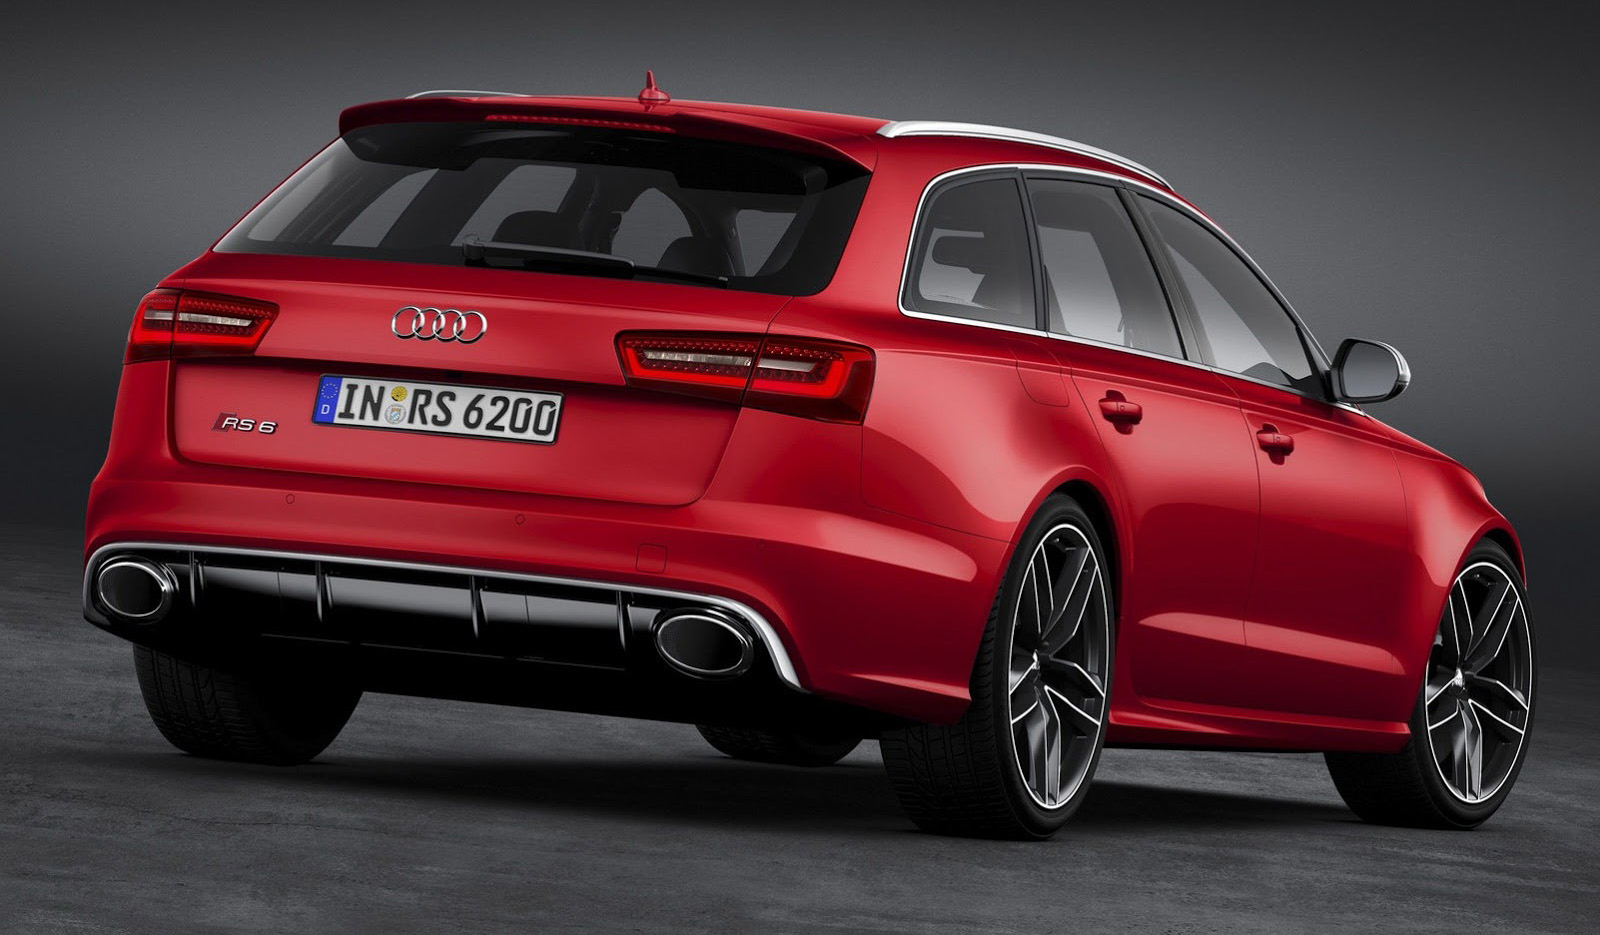 audi rs6 avant technical details history photos on better parts ltd. Black Bedroom Furniture Sets. Home Design Ideas